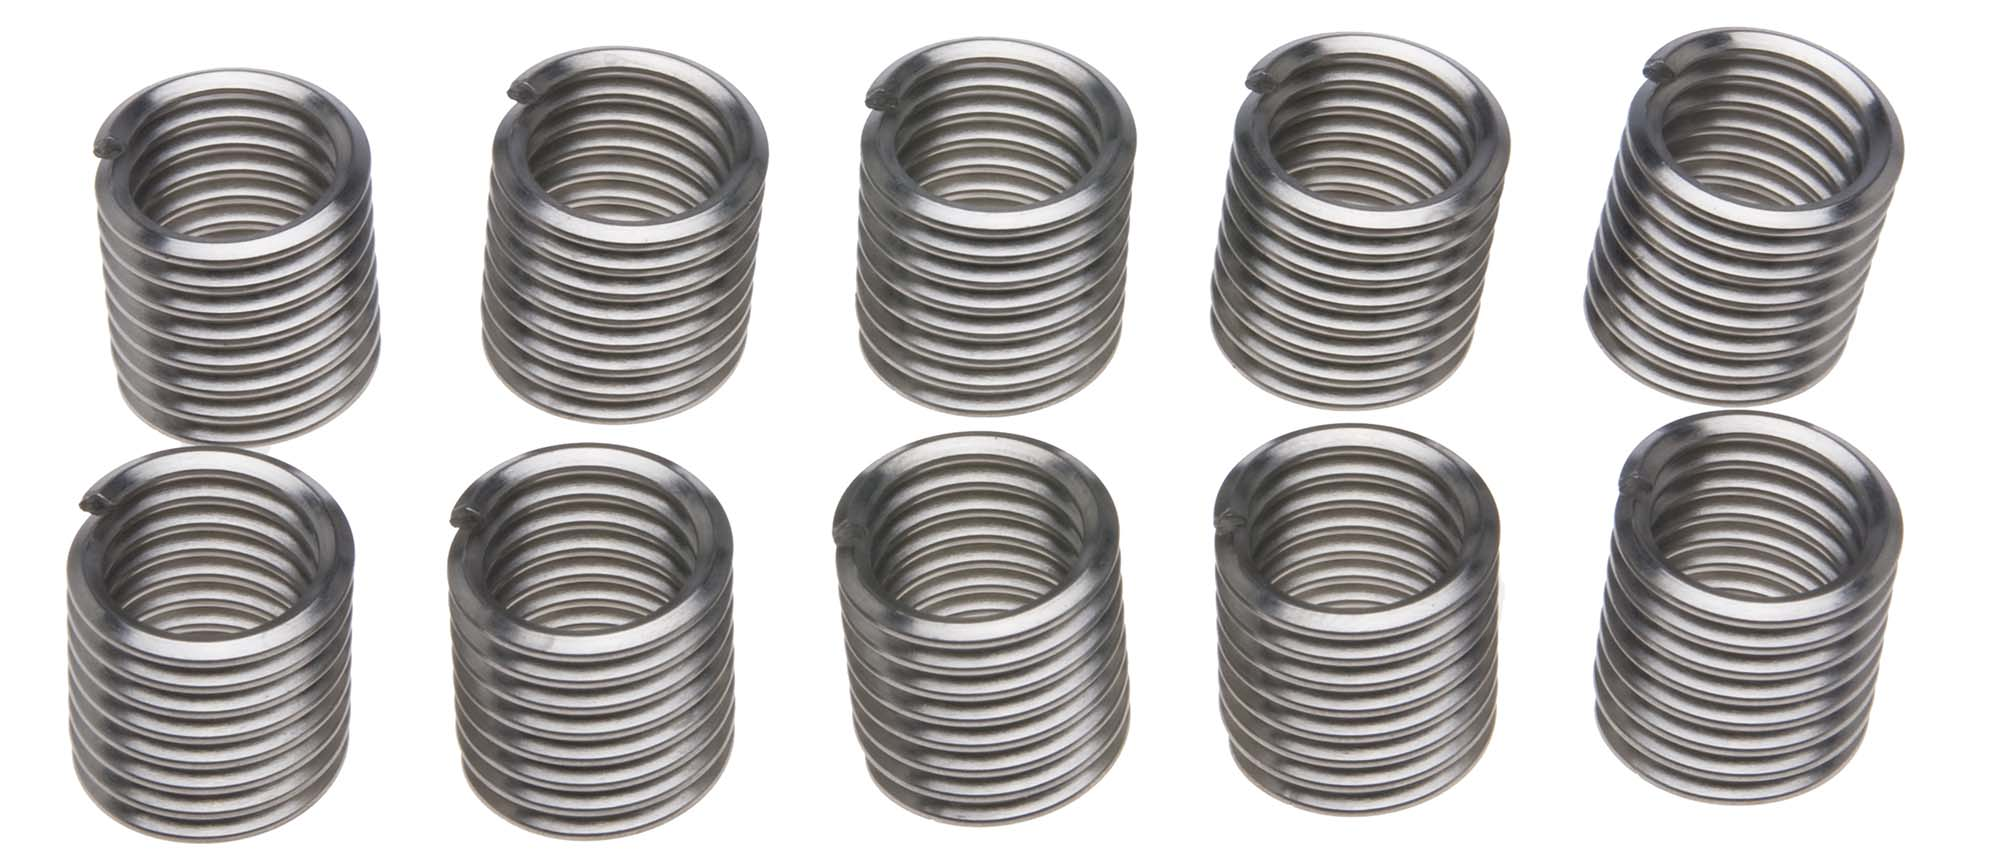 12mm x 1.25 Recoil Thread Repair Insert Pack (10)